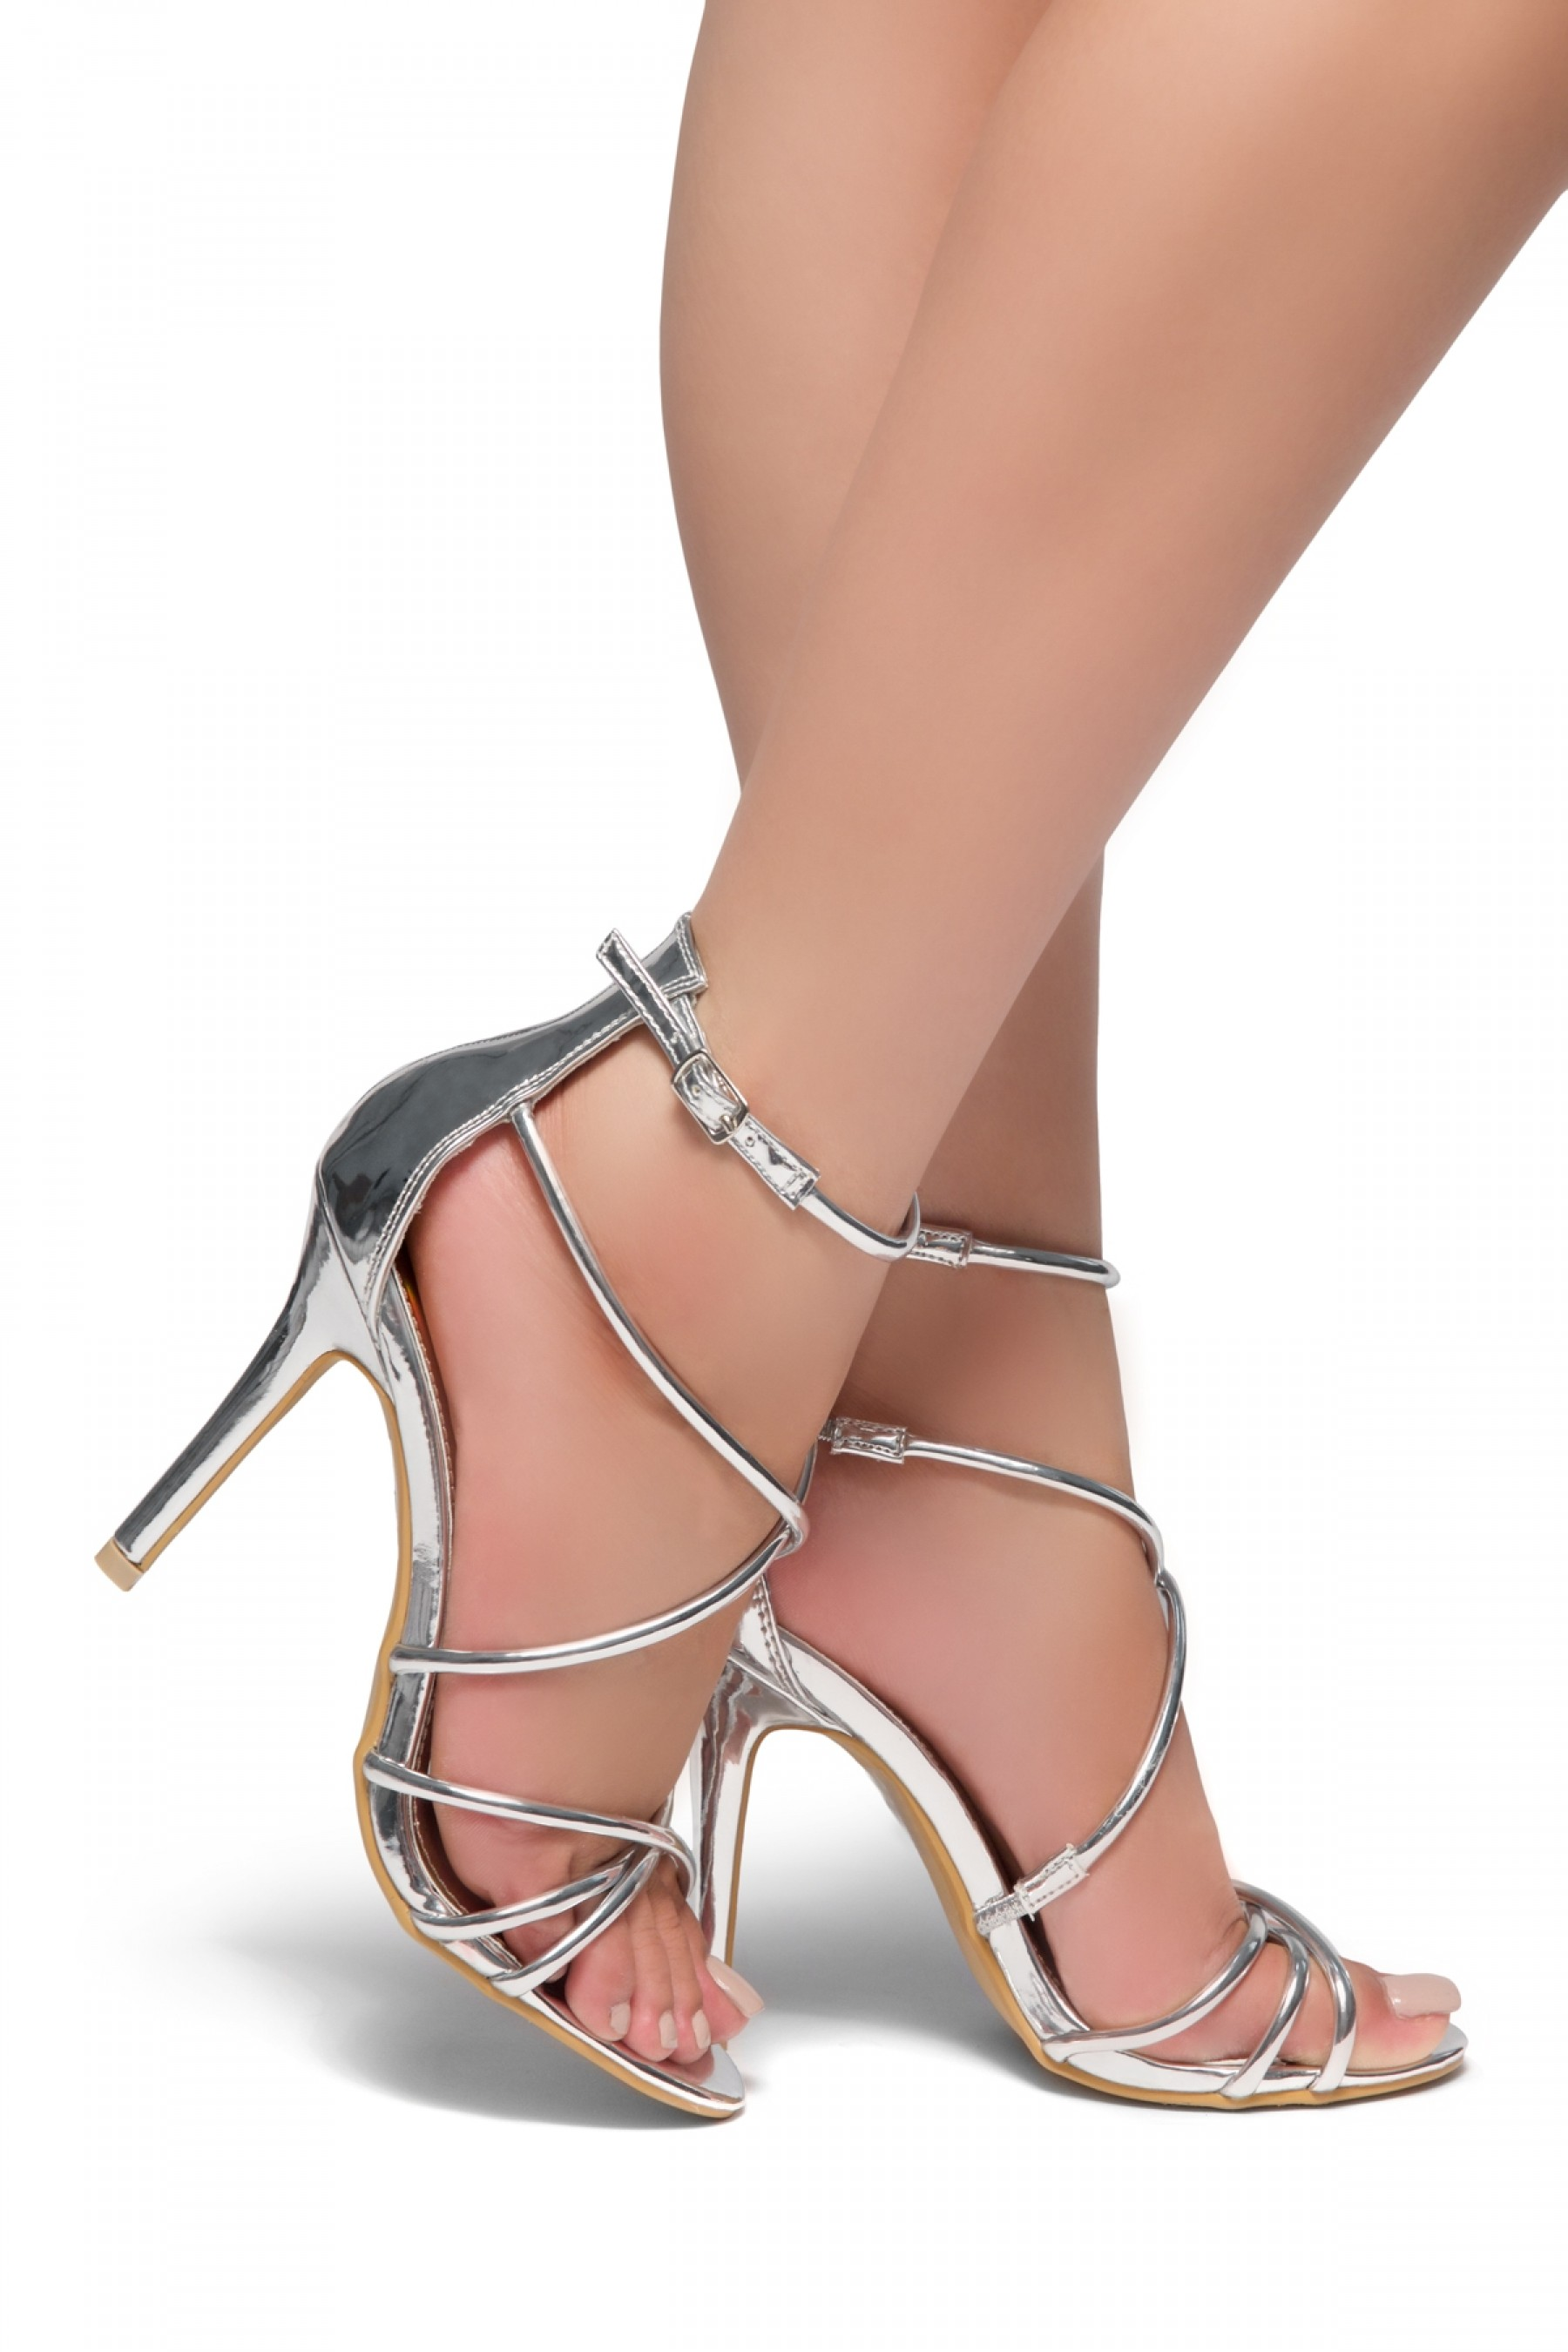 Villarosa-Stiletto heel, gladiator construction, ankle strap (Silver)